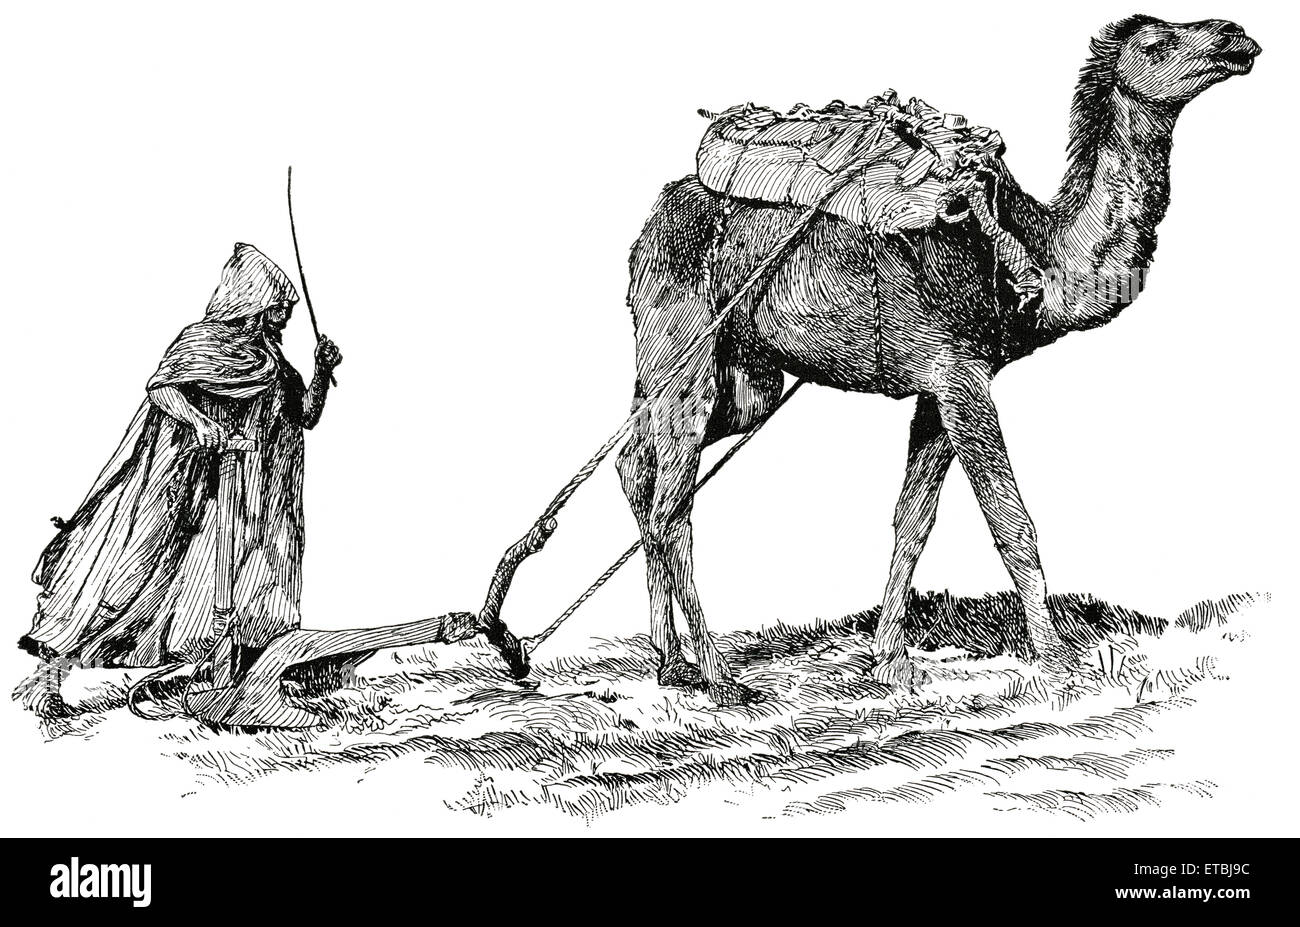 Arabian plow